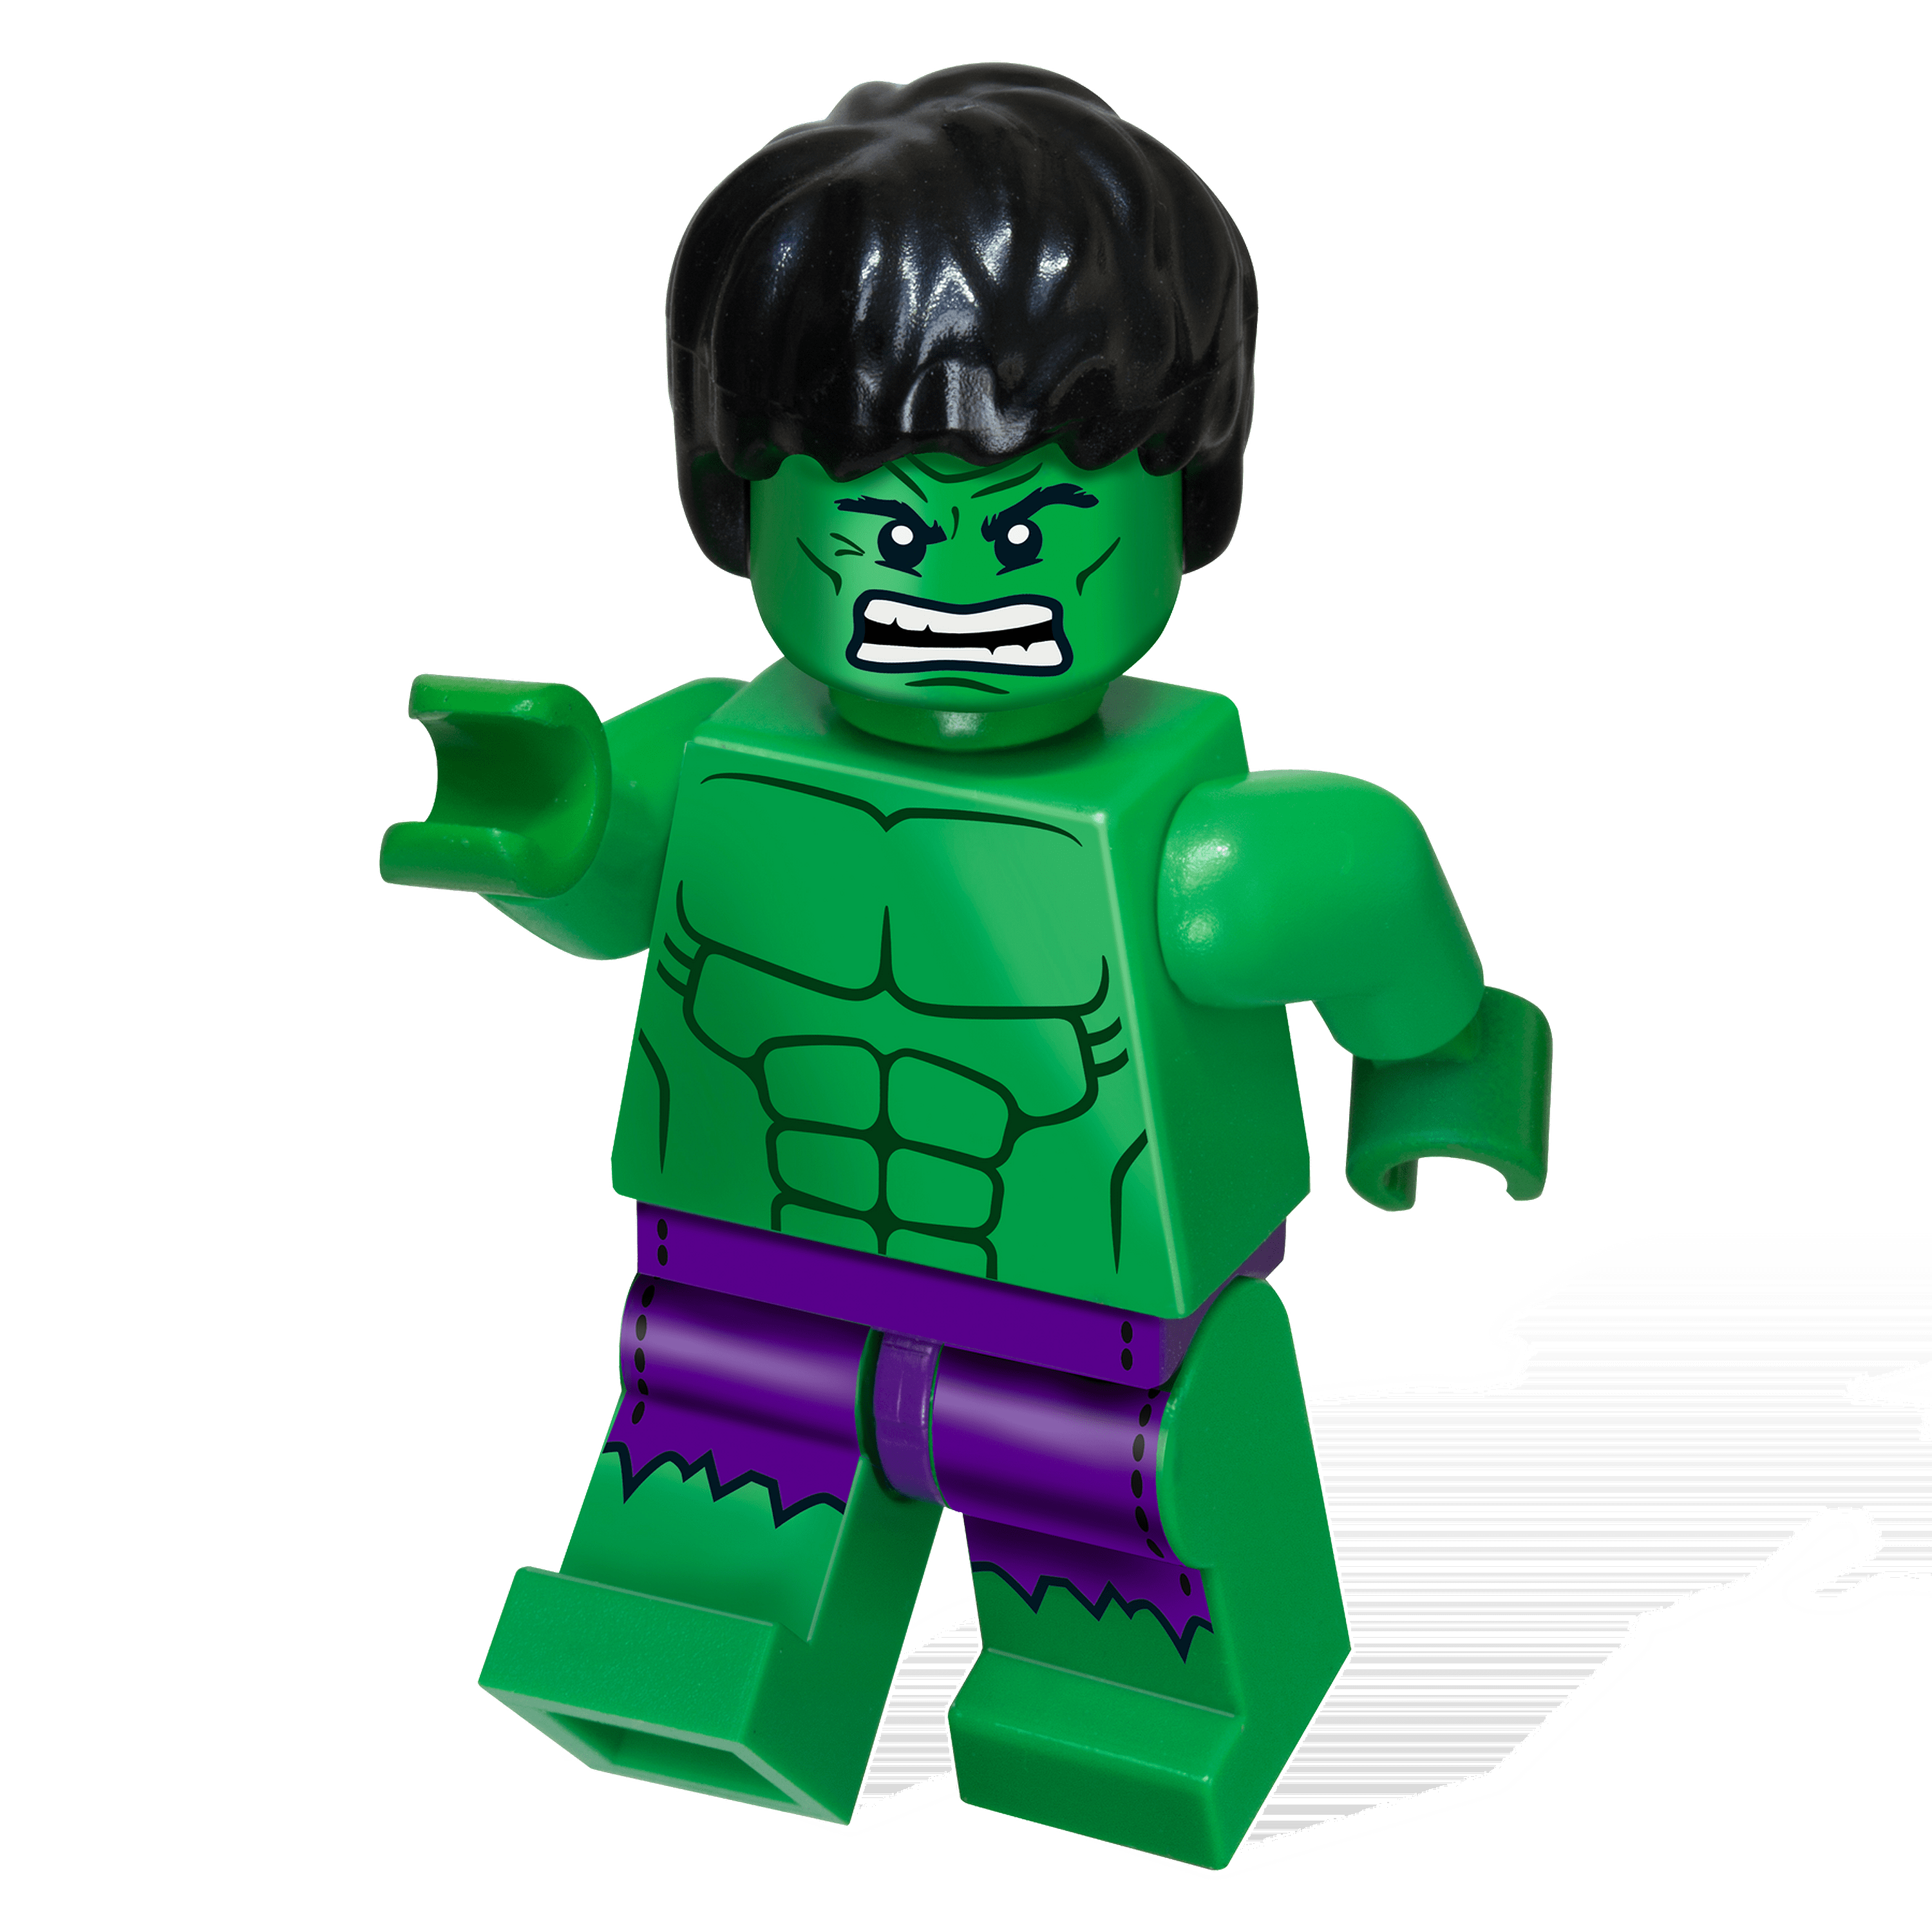 lego minifigure png - photo #30